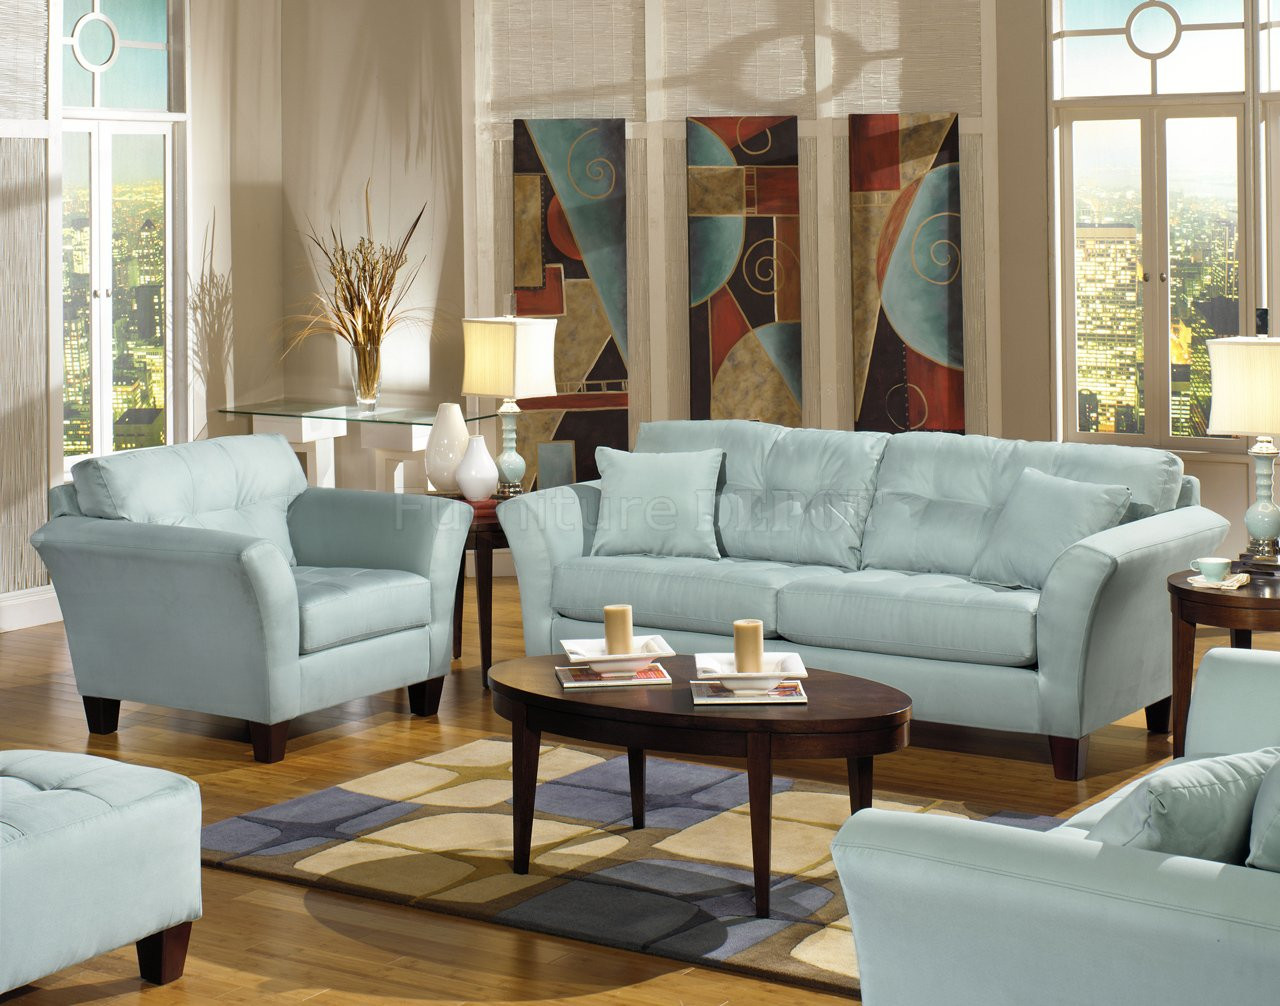 Best ideas about Light Blue Leather Sofa . Save or Pin Navy blue leather furniture light blue leather sofa Now.